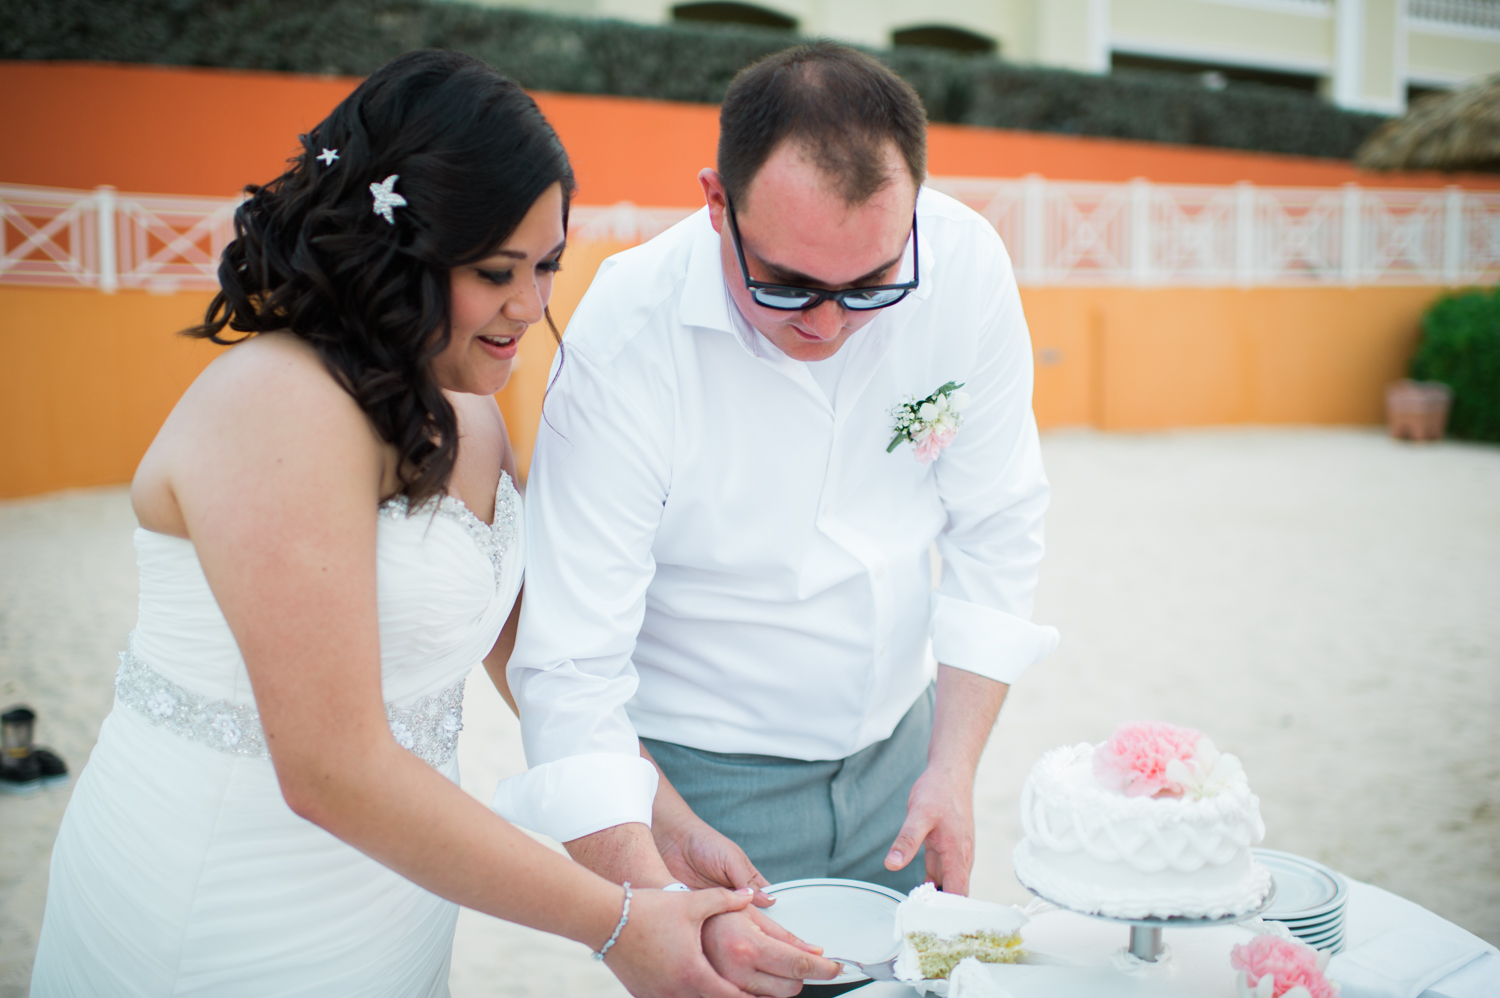 JadeandRyan-Montego-Bay-Jamaica-Wedding-Iberostar-Resort-Beach-82.jpg